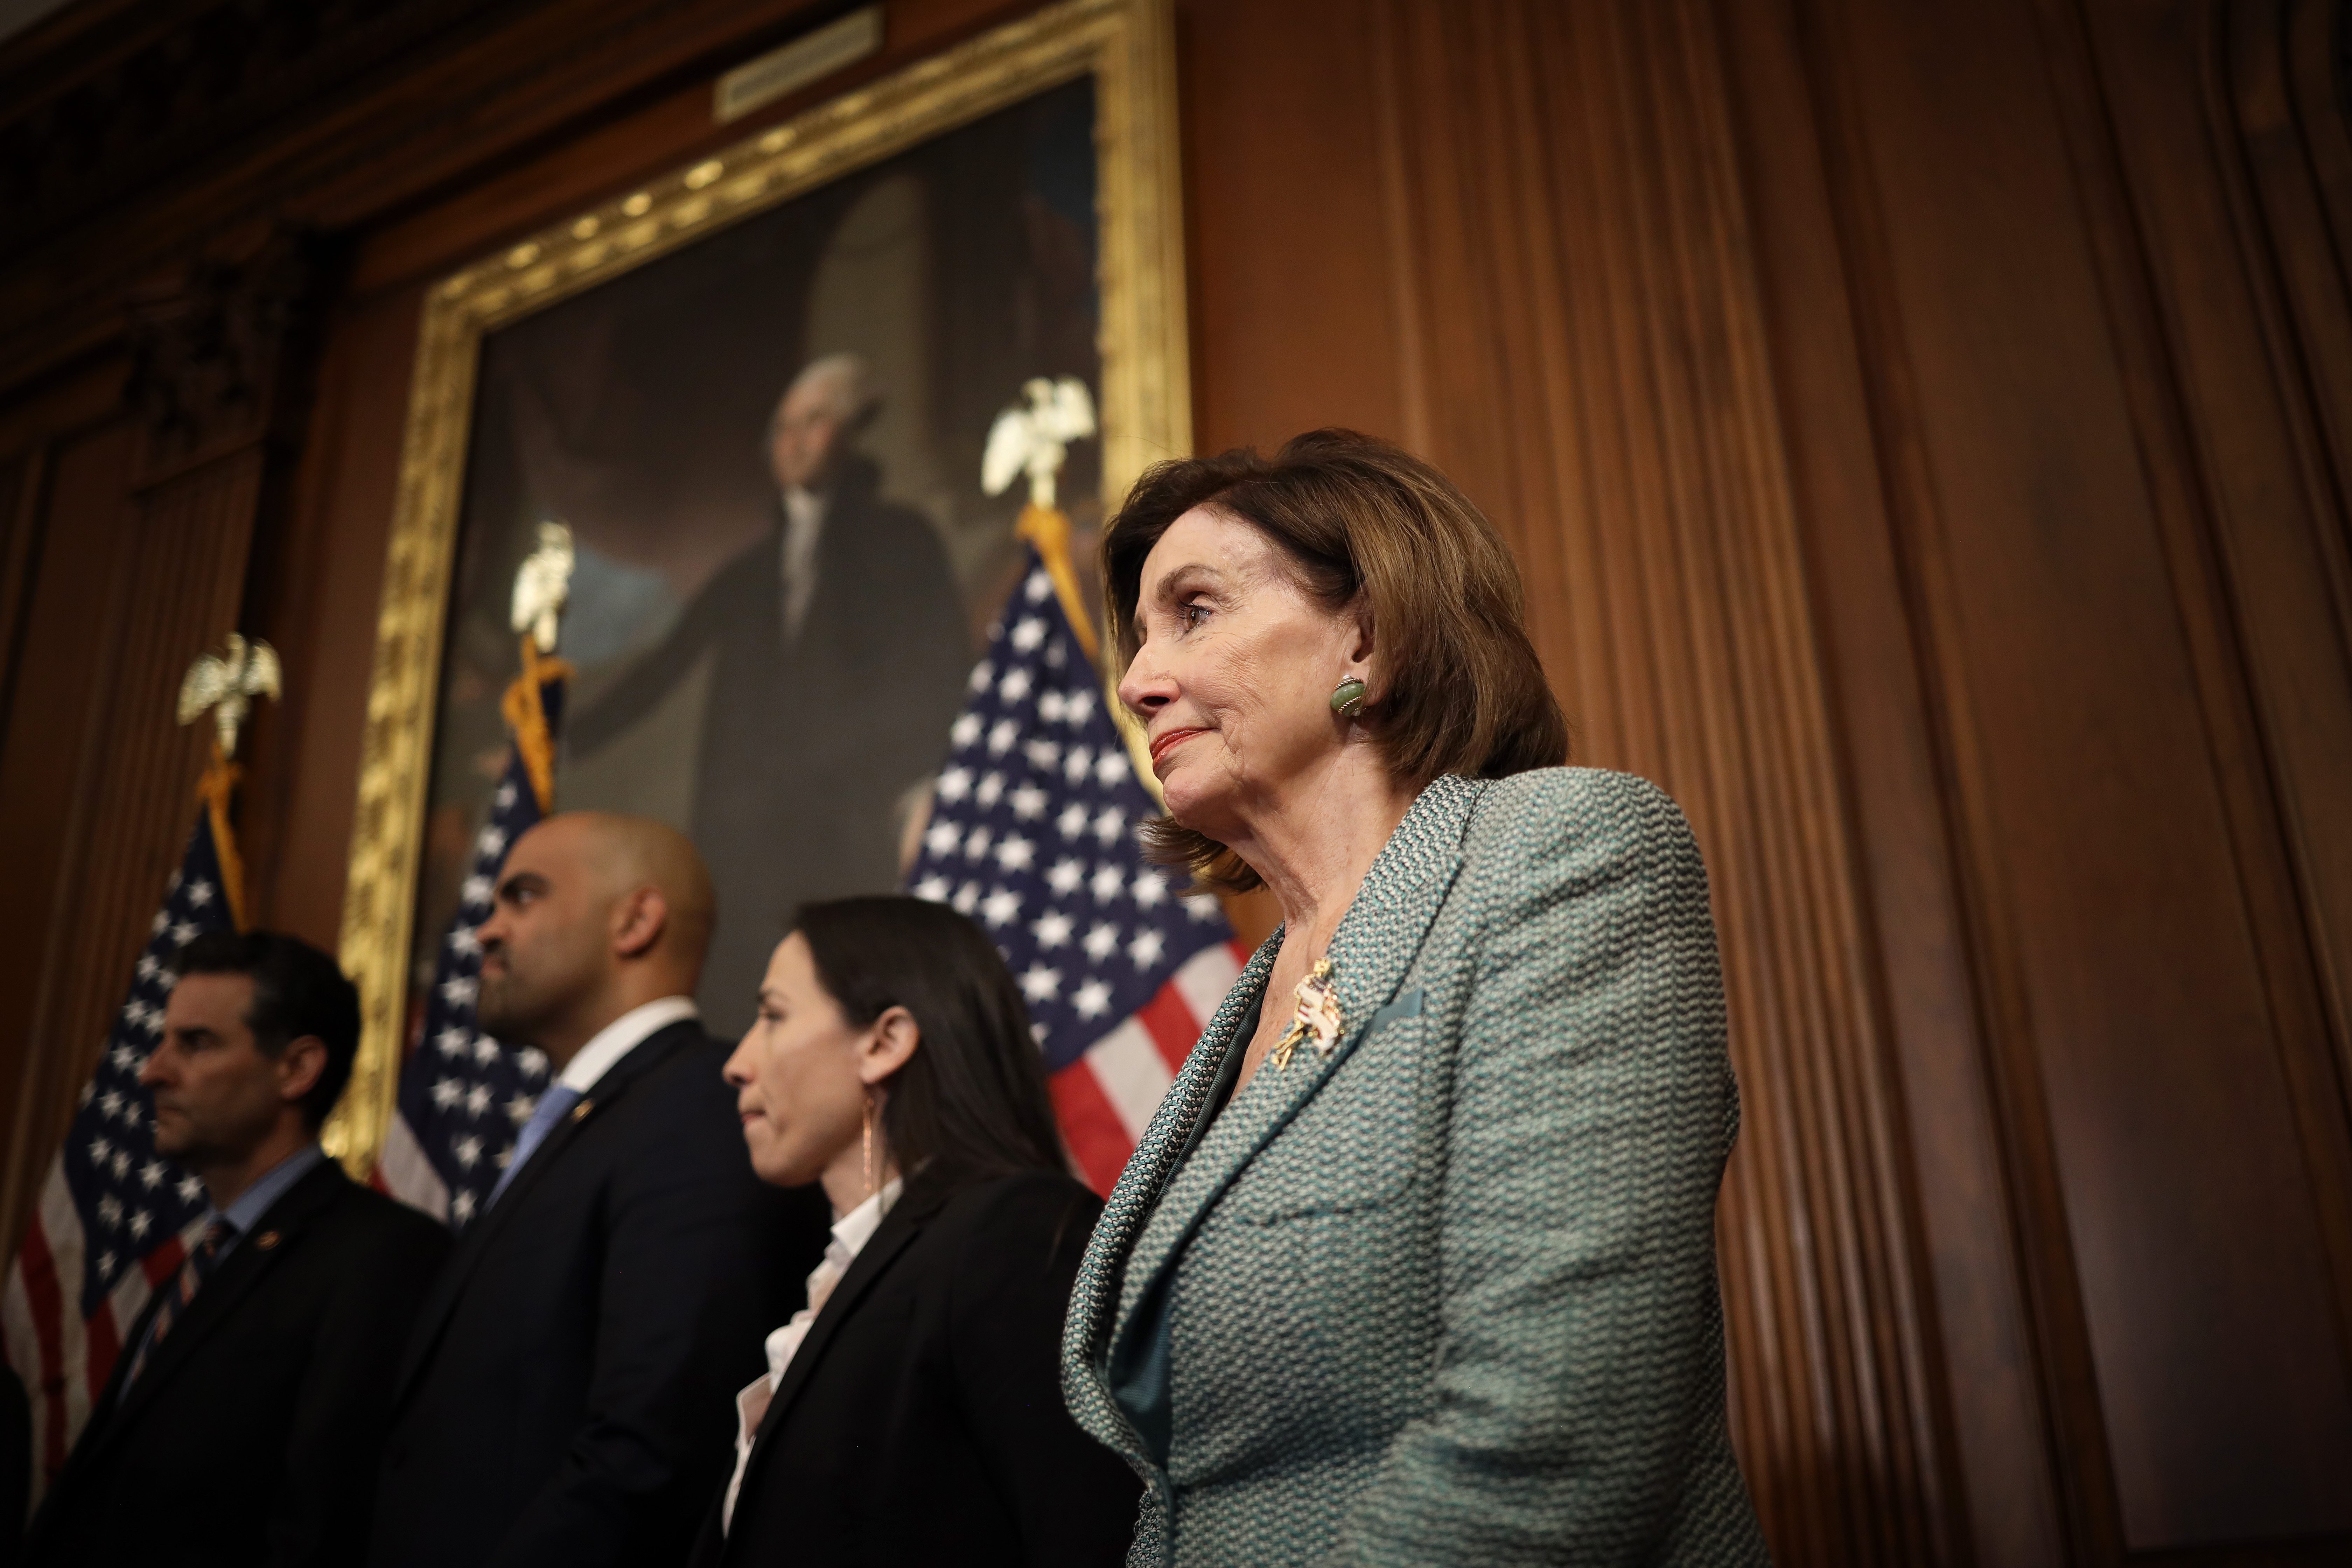 WASHINGTON, DC - MARCH 10: U.S. Speaker of the House Nancy Pelosi (R) (D-CA) attends a press conference marking the one year anniversary of the House passing HR-1, the For The People Act, March 10, 2020 in Washington, DC. After passage by the House of Representatives, Senate Majority Leader Mitch McConnell refused to bring the bill to a vote in the U.S. Senate. (Photo by Win McNamee/Getty Images)